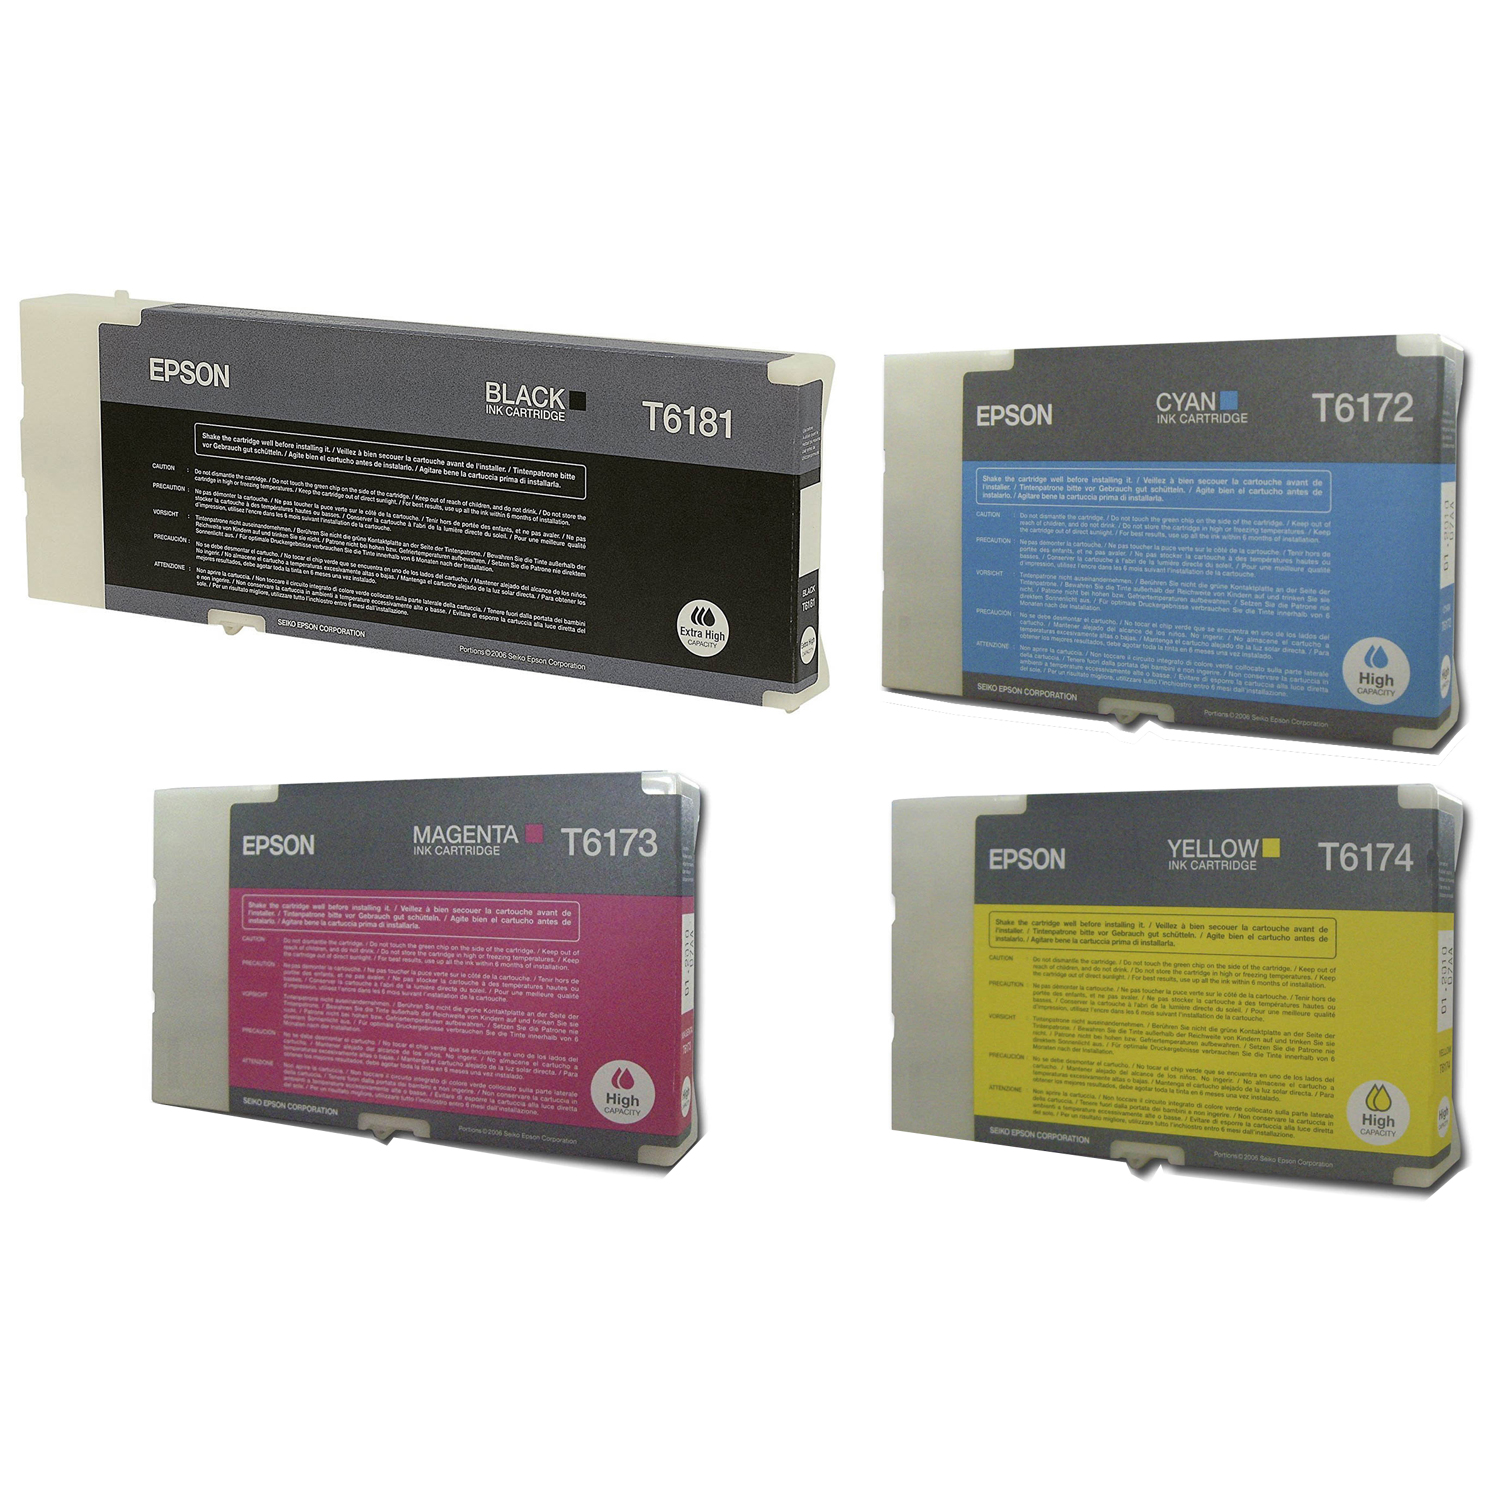 Original Epson T61 CMYK Multipack Ink Cartridges (T6172 / T6173 / T6174 / T6181)